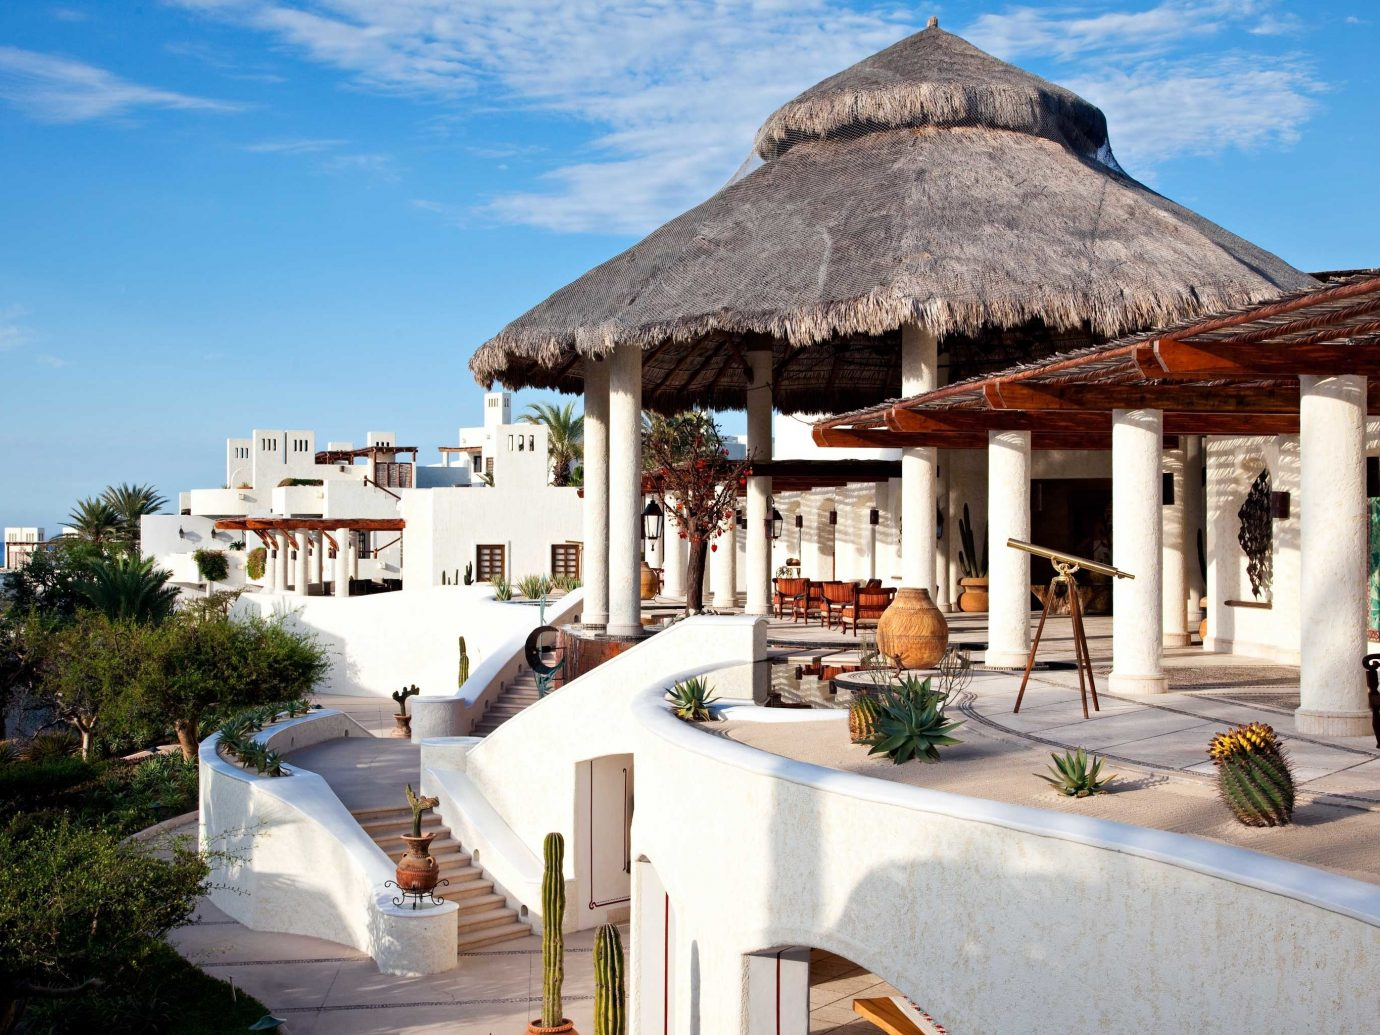 Beach Elegant Exterior Honeymoon Hotels Living Lounge Luxury Luxury Travel Mexico Modern Romance Romantic Tulum sky outdoor building property vacation house Resort estate home Villa tourism real estate restaurant cottage hacienda area Island